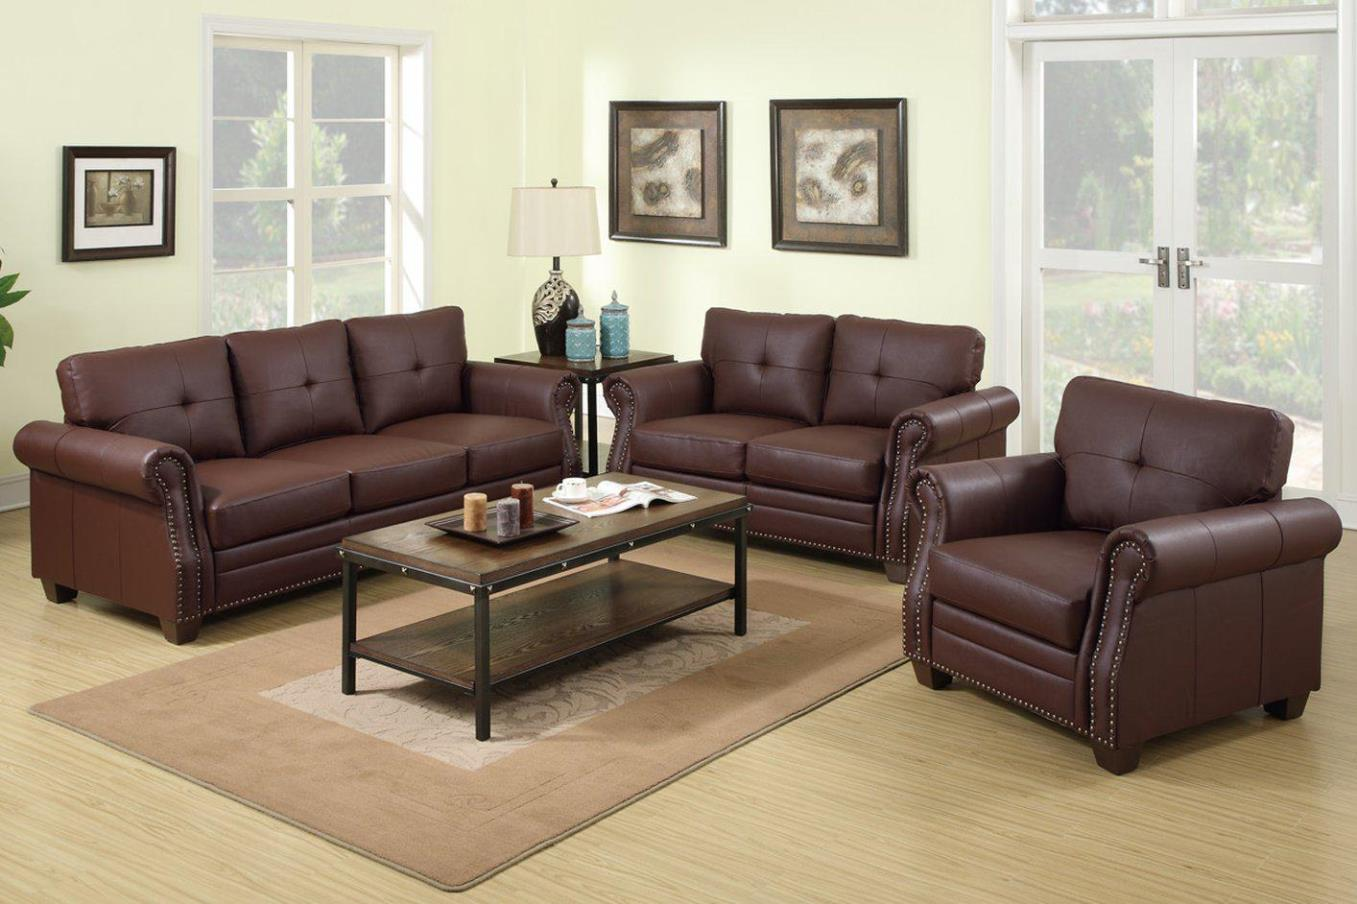 Image of: Sofa And Loveseat Sets Under 1000